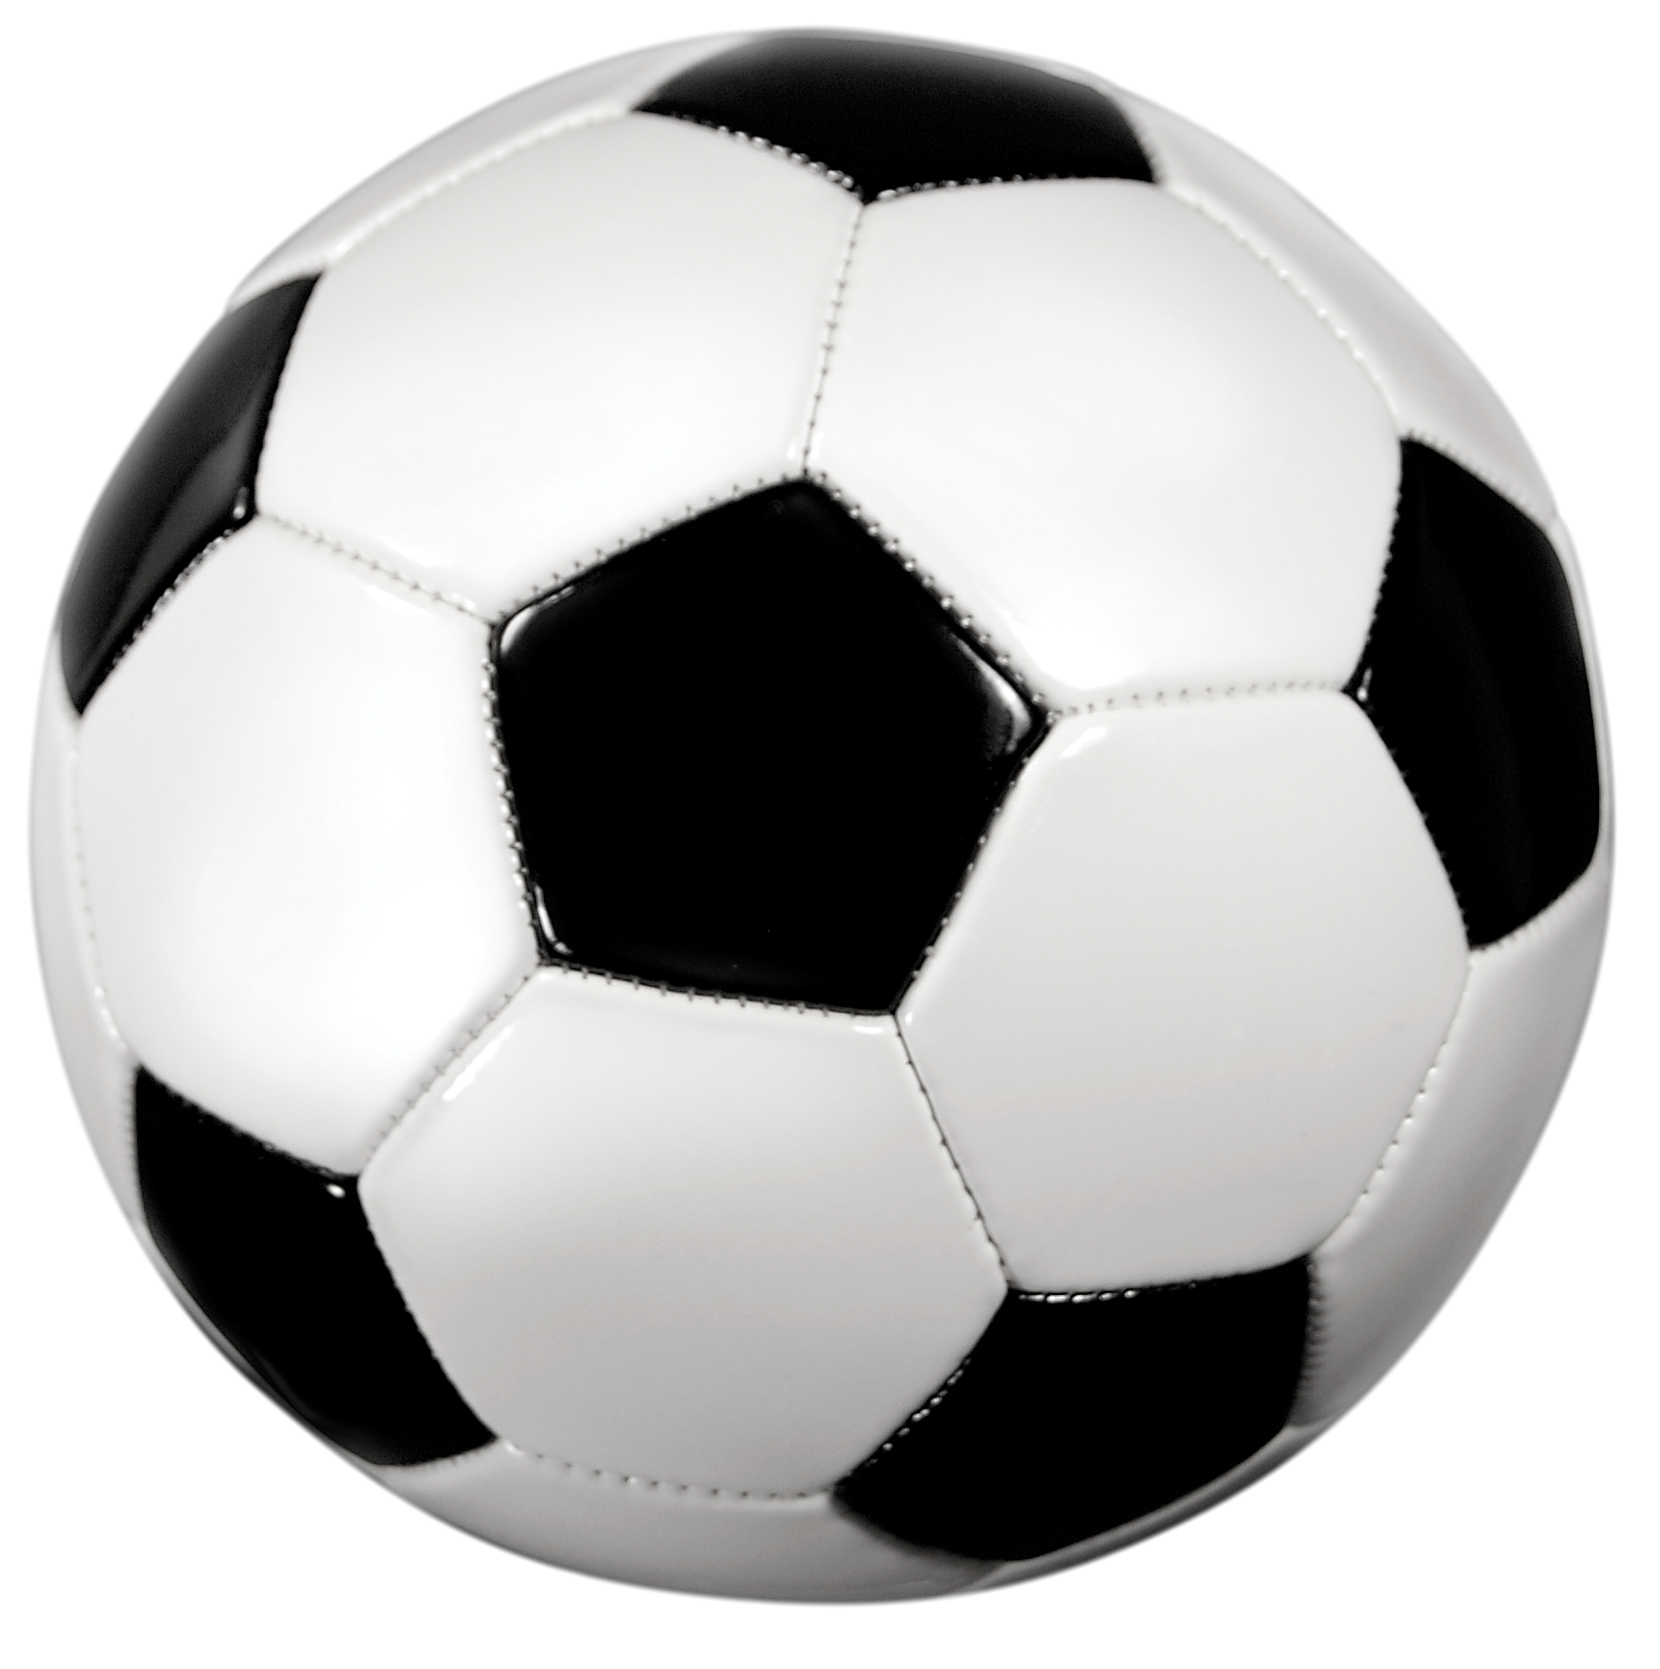 Png soccer ball. Transparent background arts